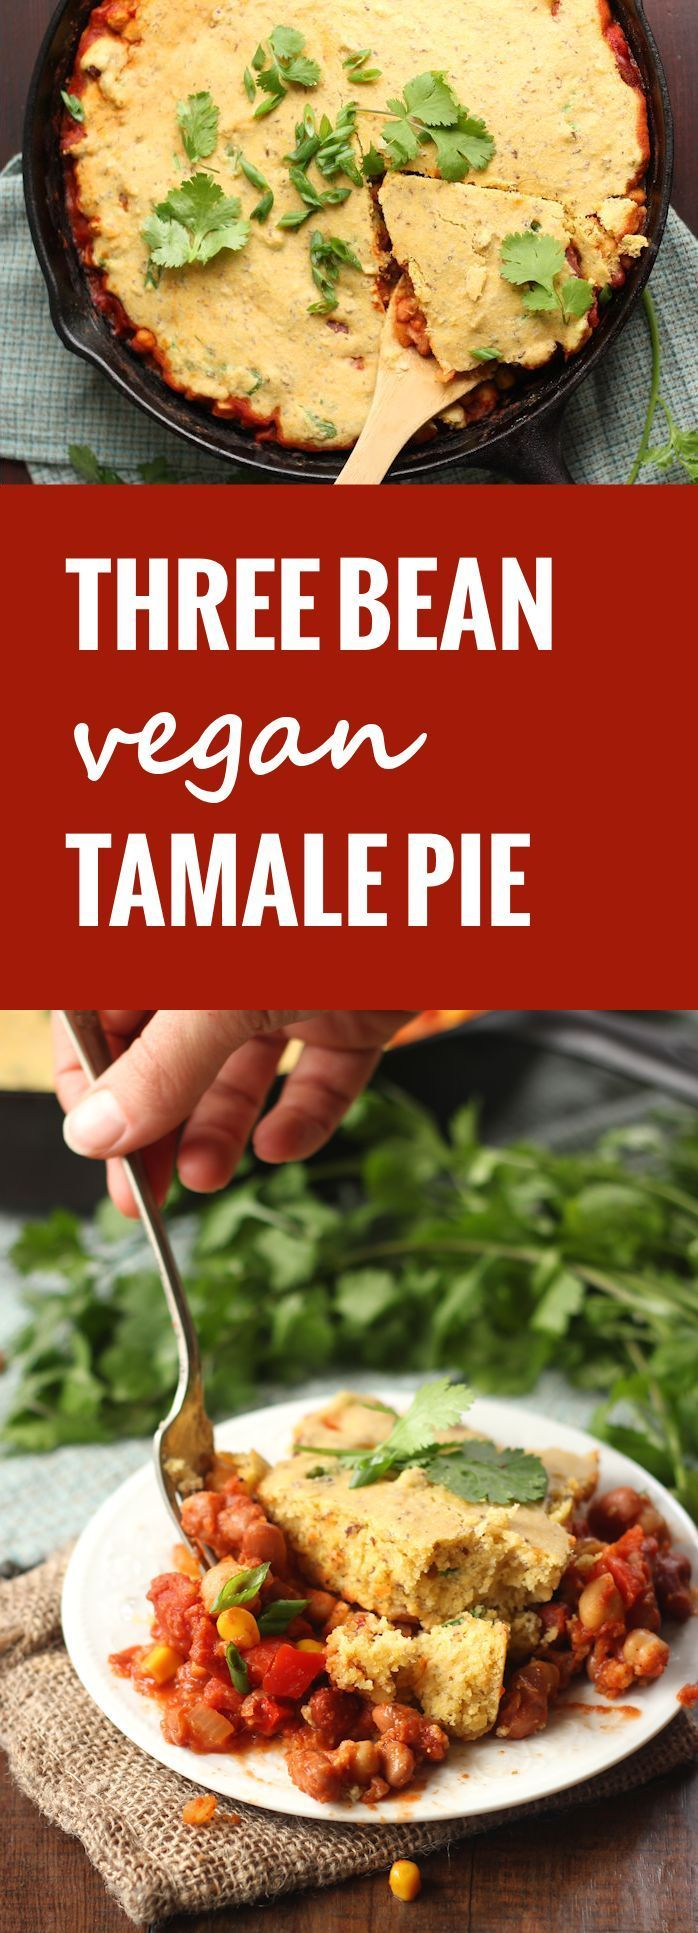 This vegan tamale pie is made with a mixture of chickpeas, pinto beans and red beans simmered in spicy tomato sauce and baked with a cornbread crust.